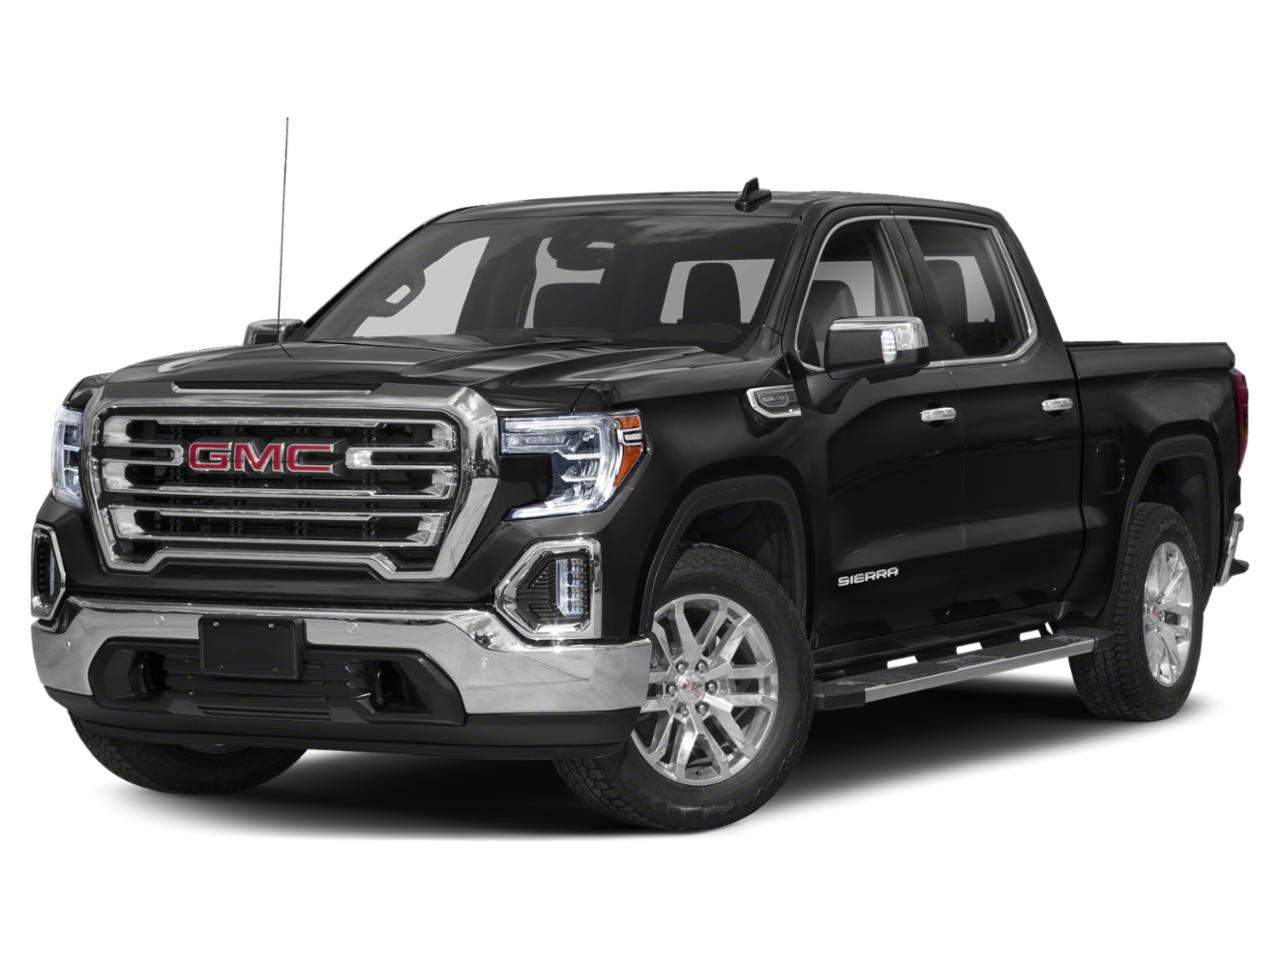 "2019 GMC Sierra 1500 4WD CREW CAB 147"" AT4 Crew Cab Pickup Slide"